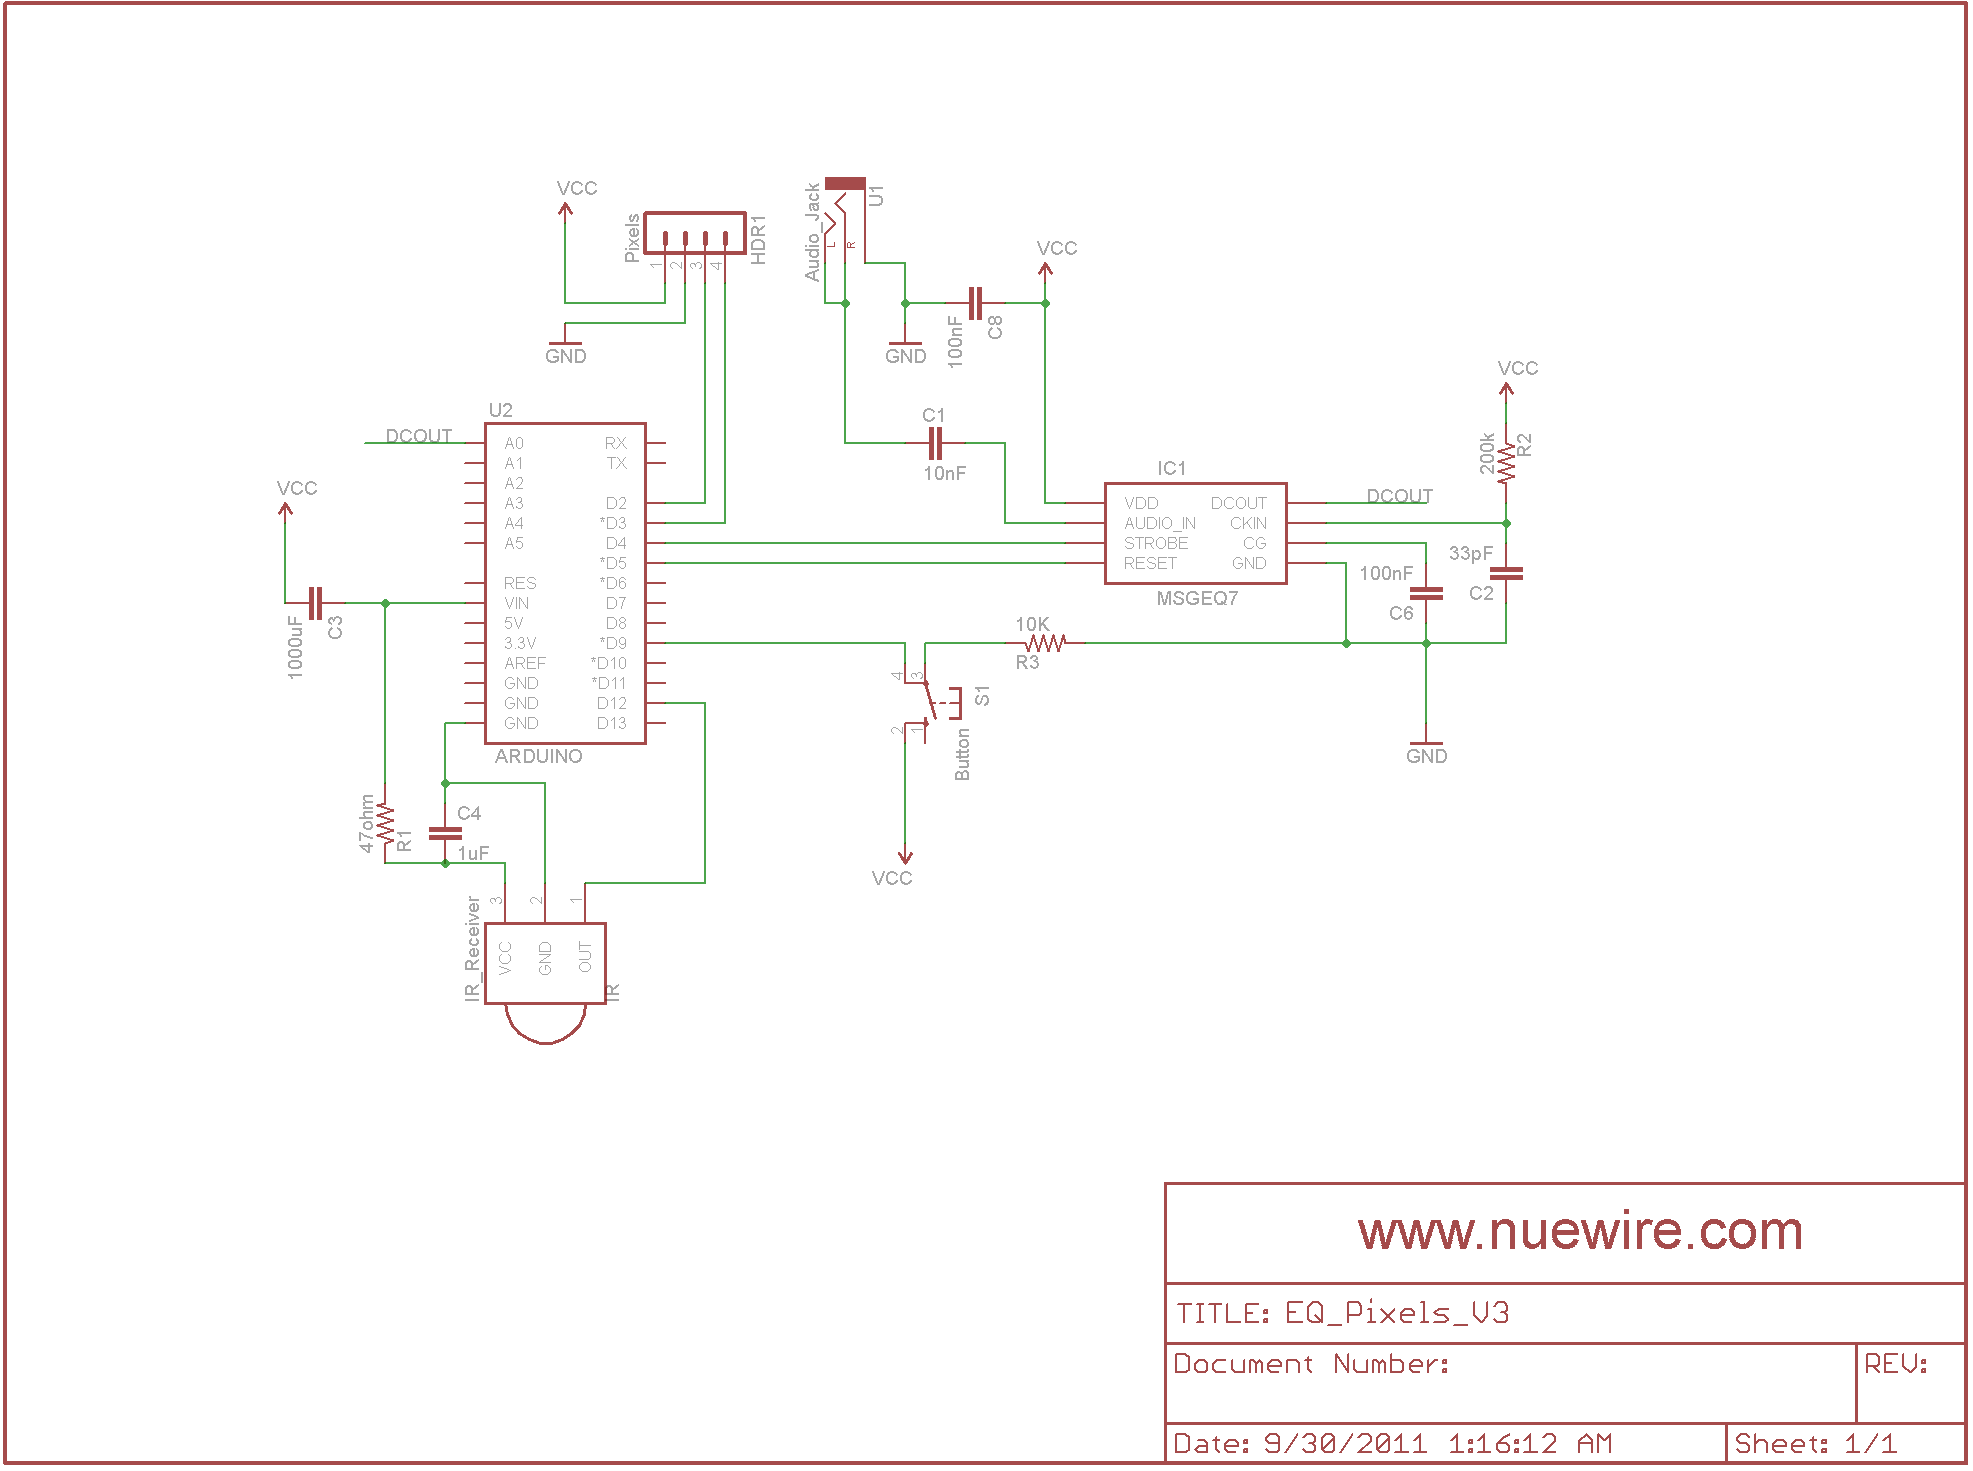 Eq Pixels Nuewire How To Build 10 Band Graphic Equalizer Circuit Diagram Schematic